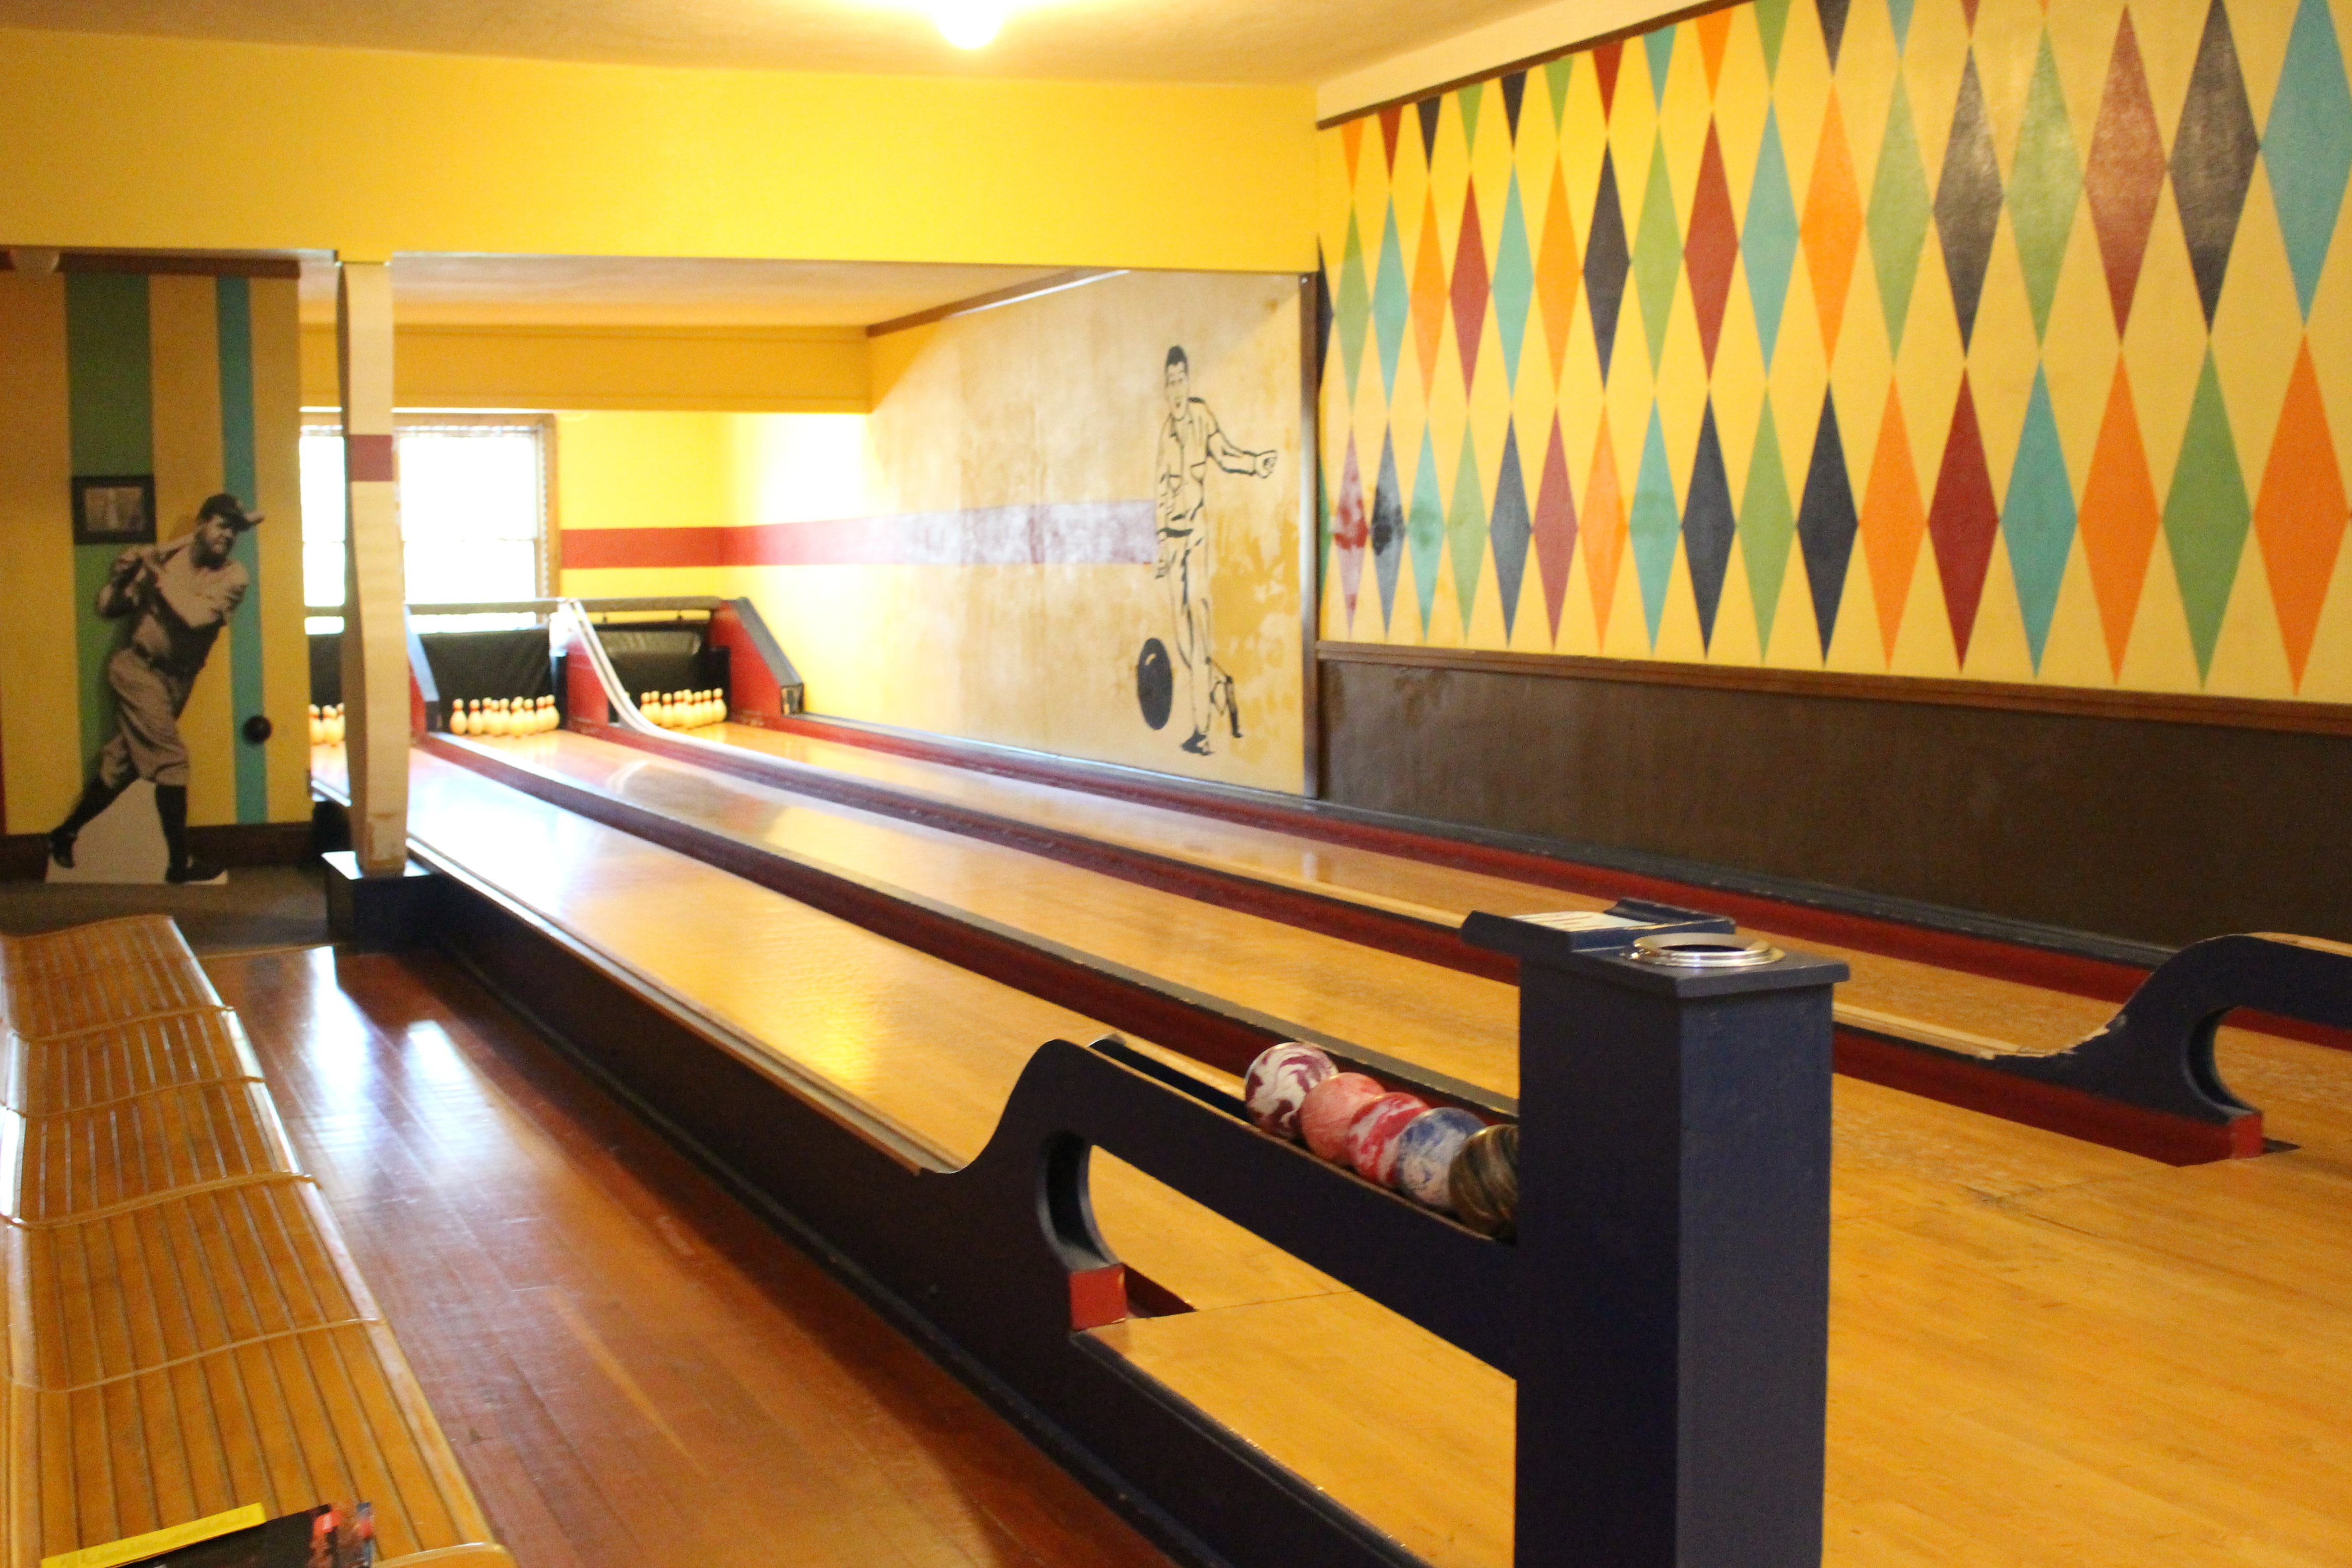 Potter Duckpin Bowling Alley